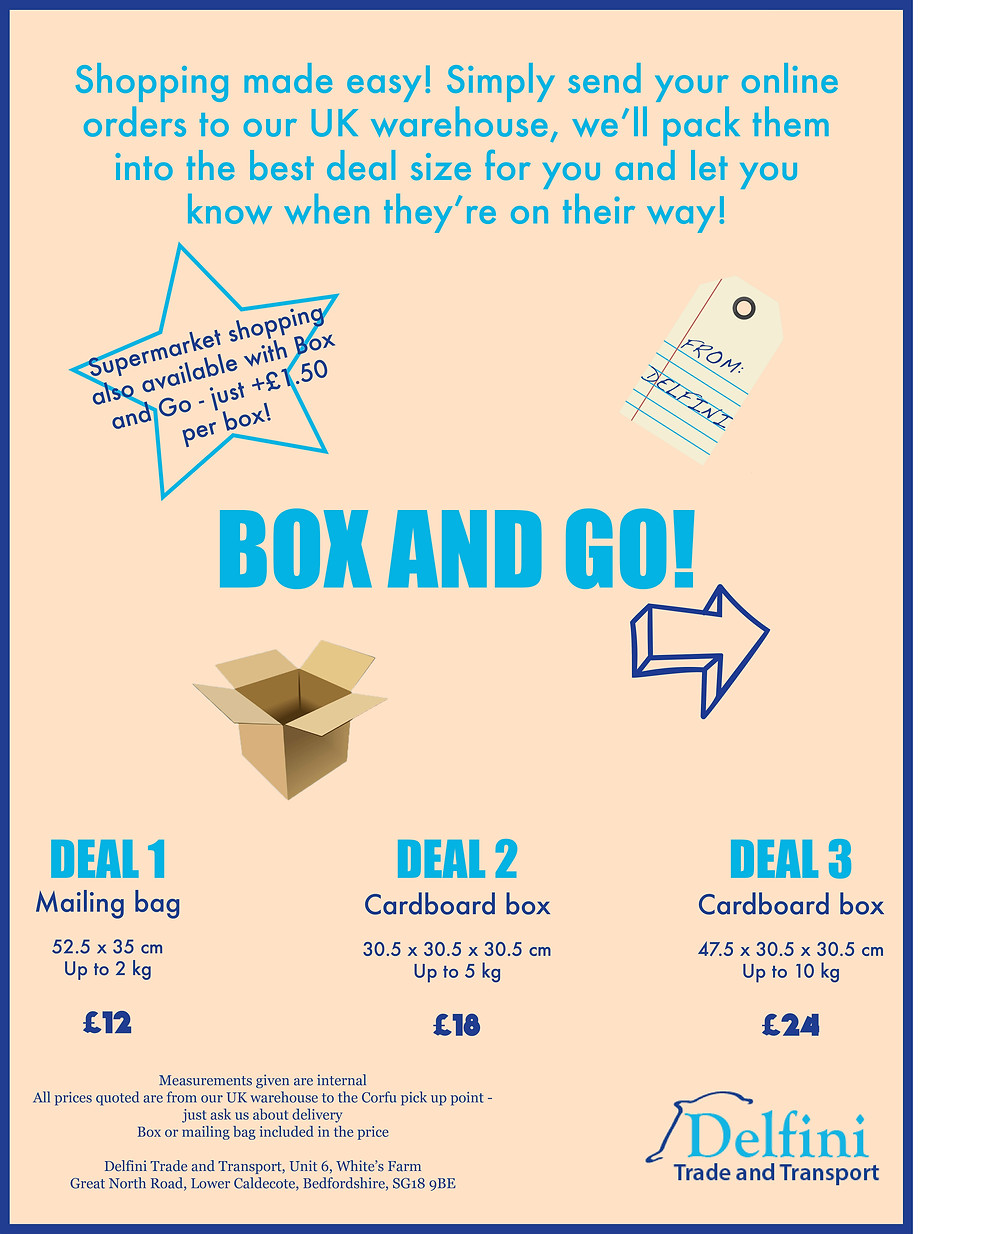 Box and Go service